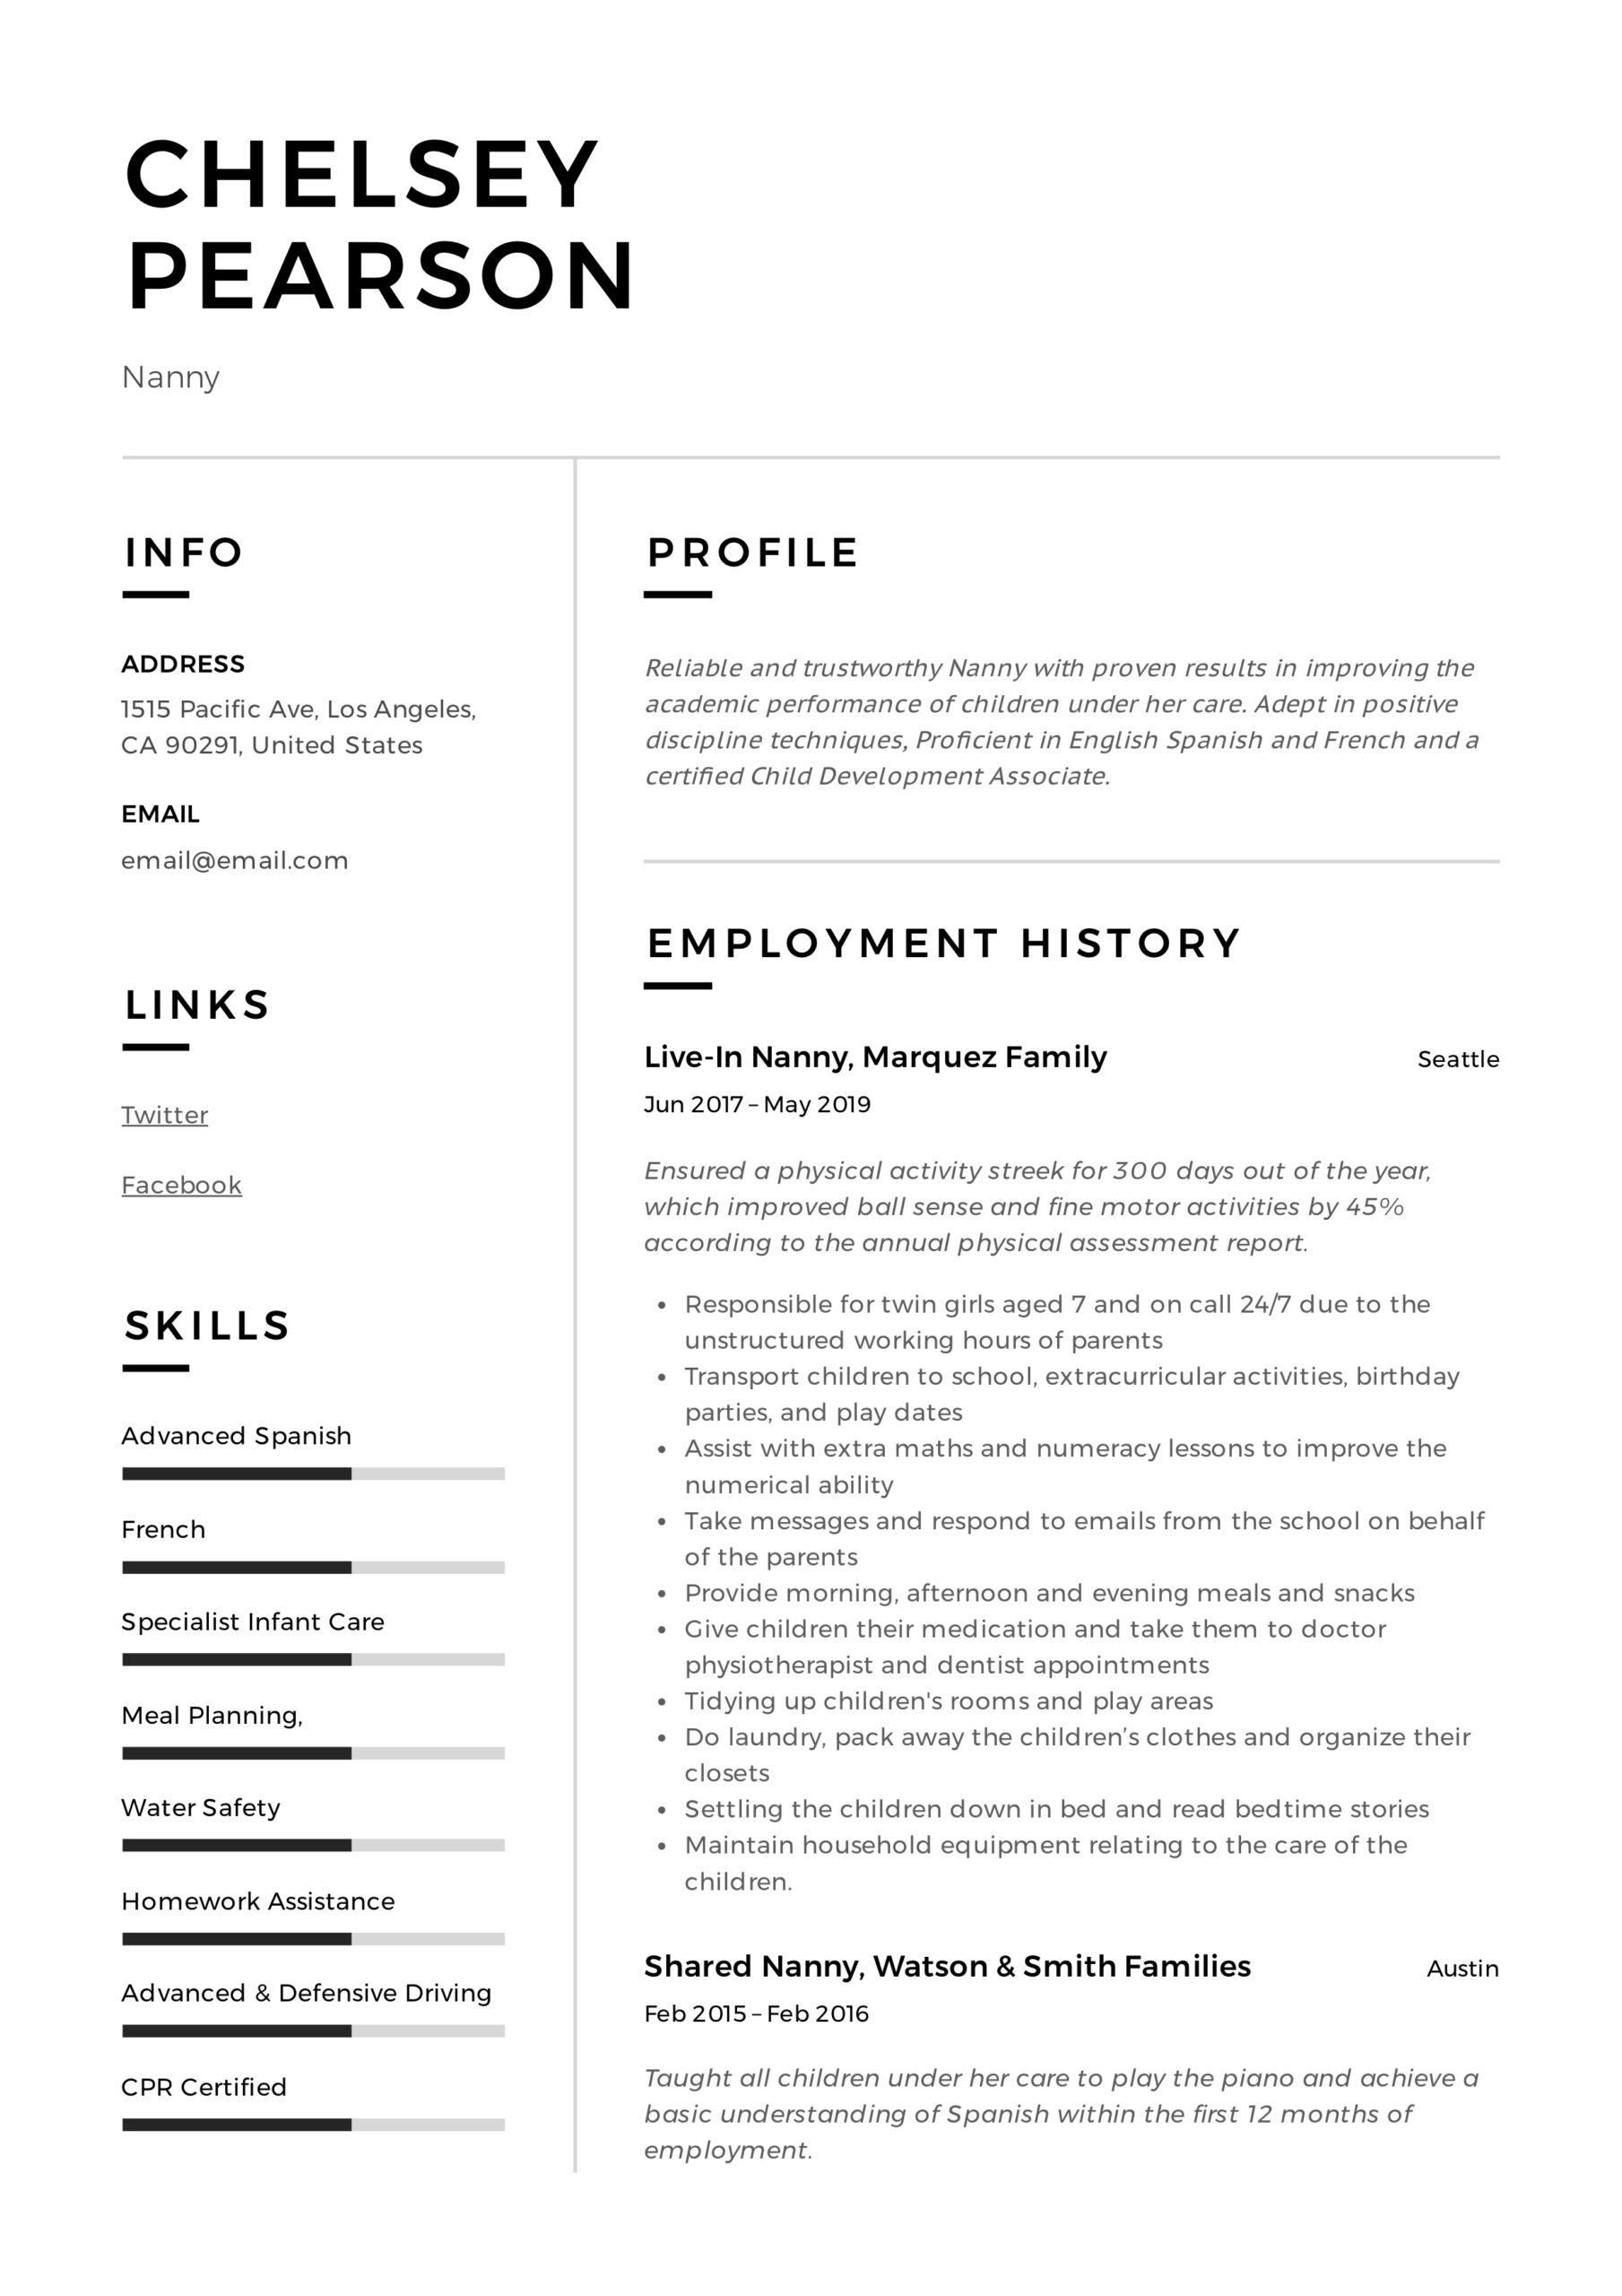 nanny resume writing guide template samples pdf professional templates correctional Resume Professional Nanny Resume Templates